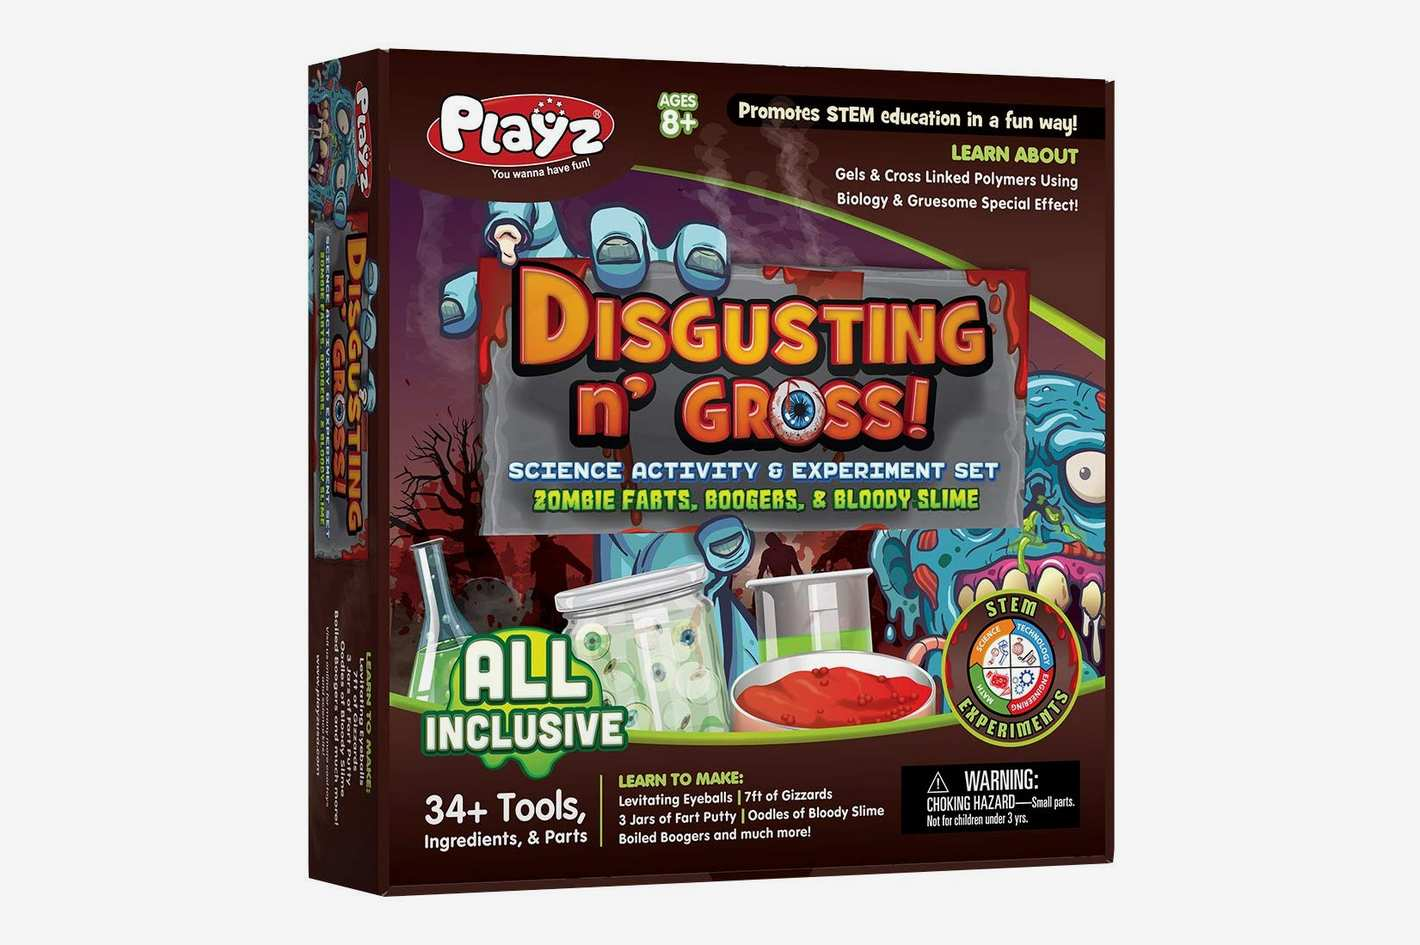 Playz Disgusting n' Gross Zombie Farts, Boogers, & Bloody Slime Science Activity & Experiment Set